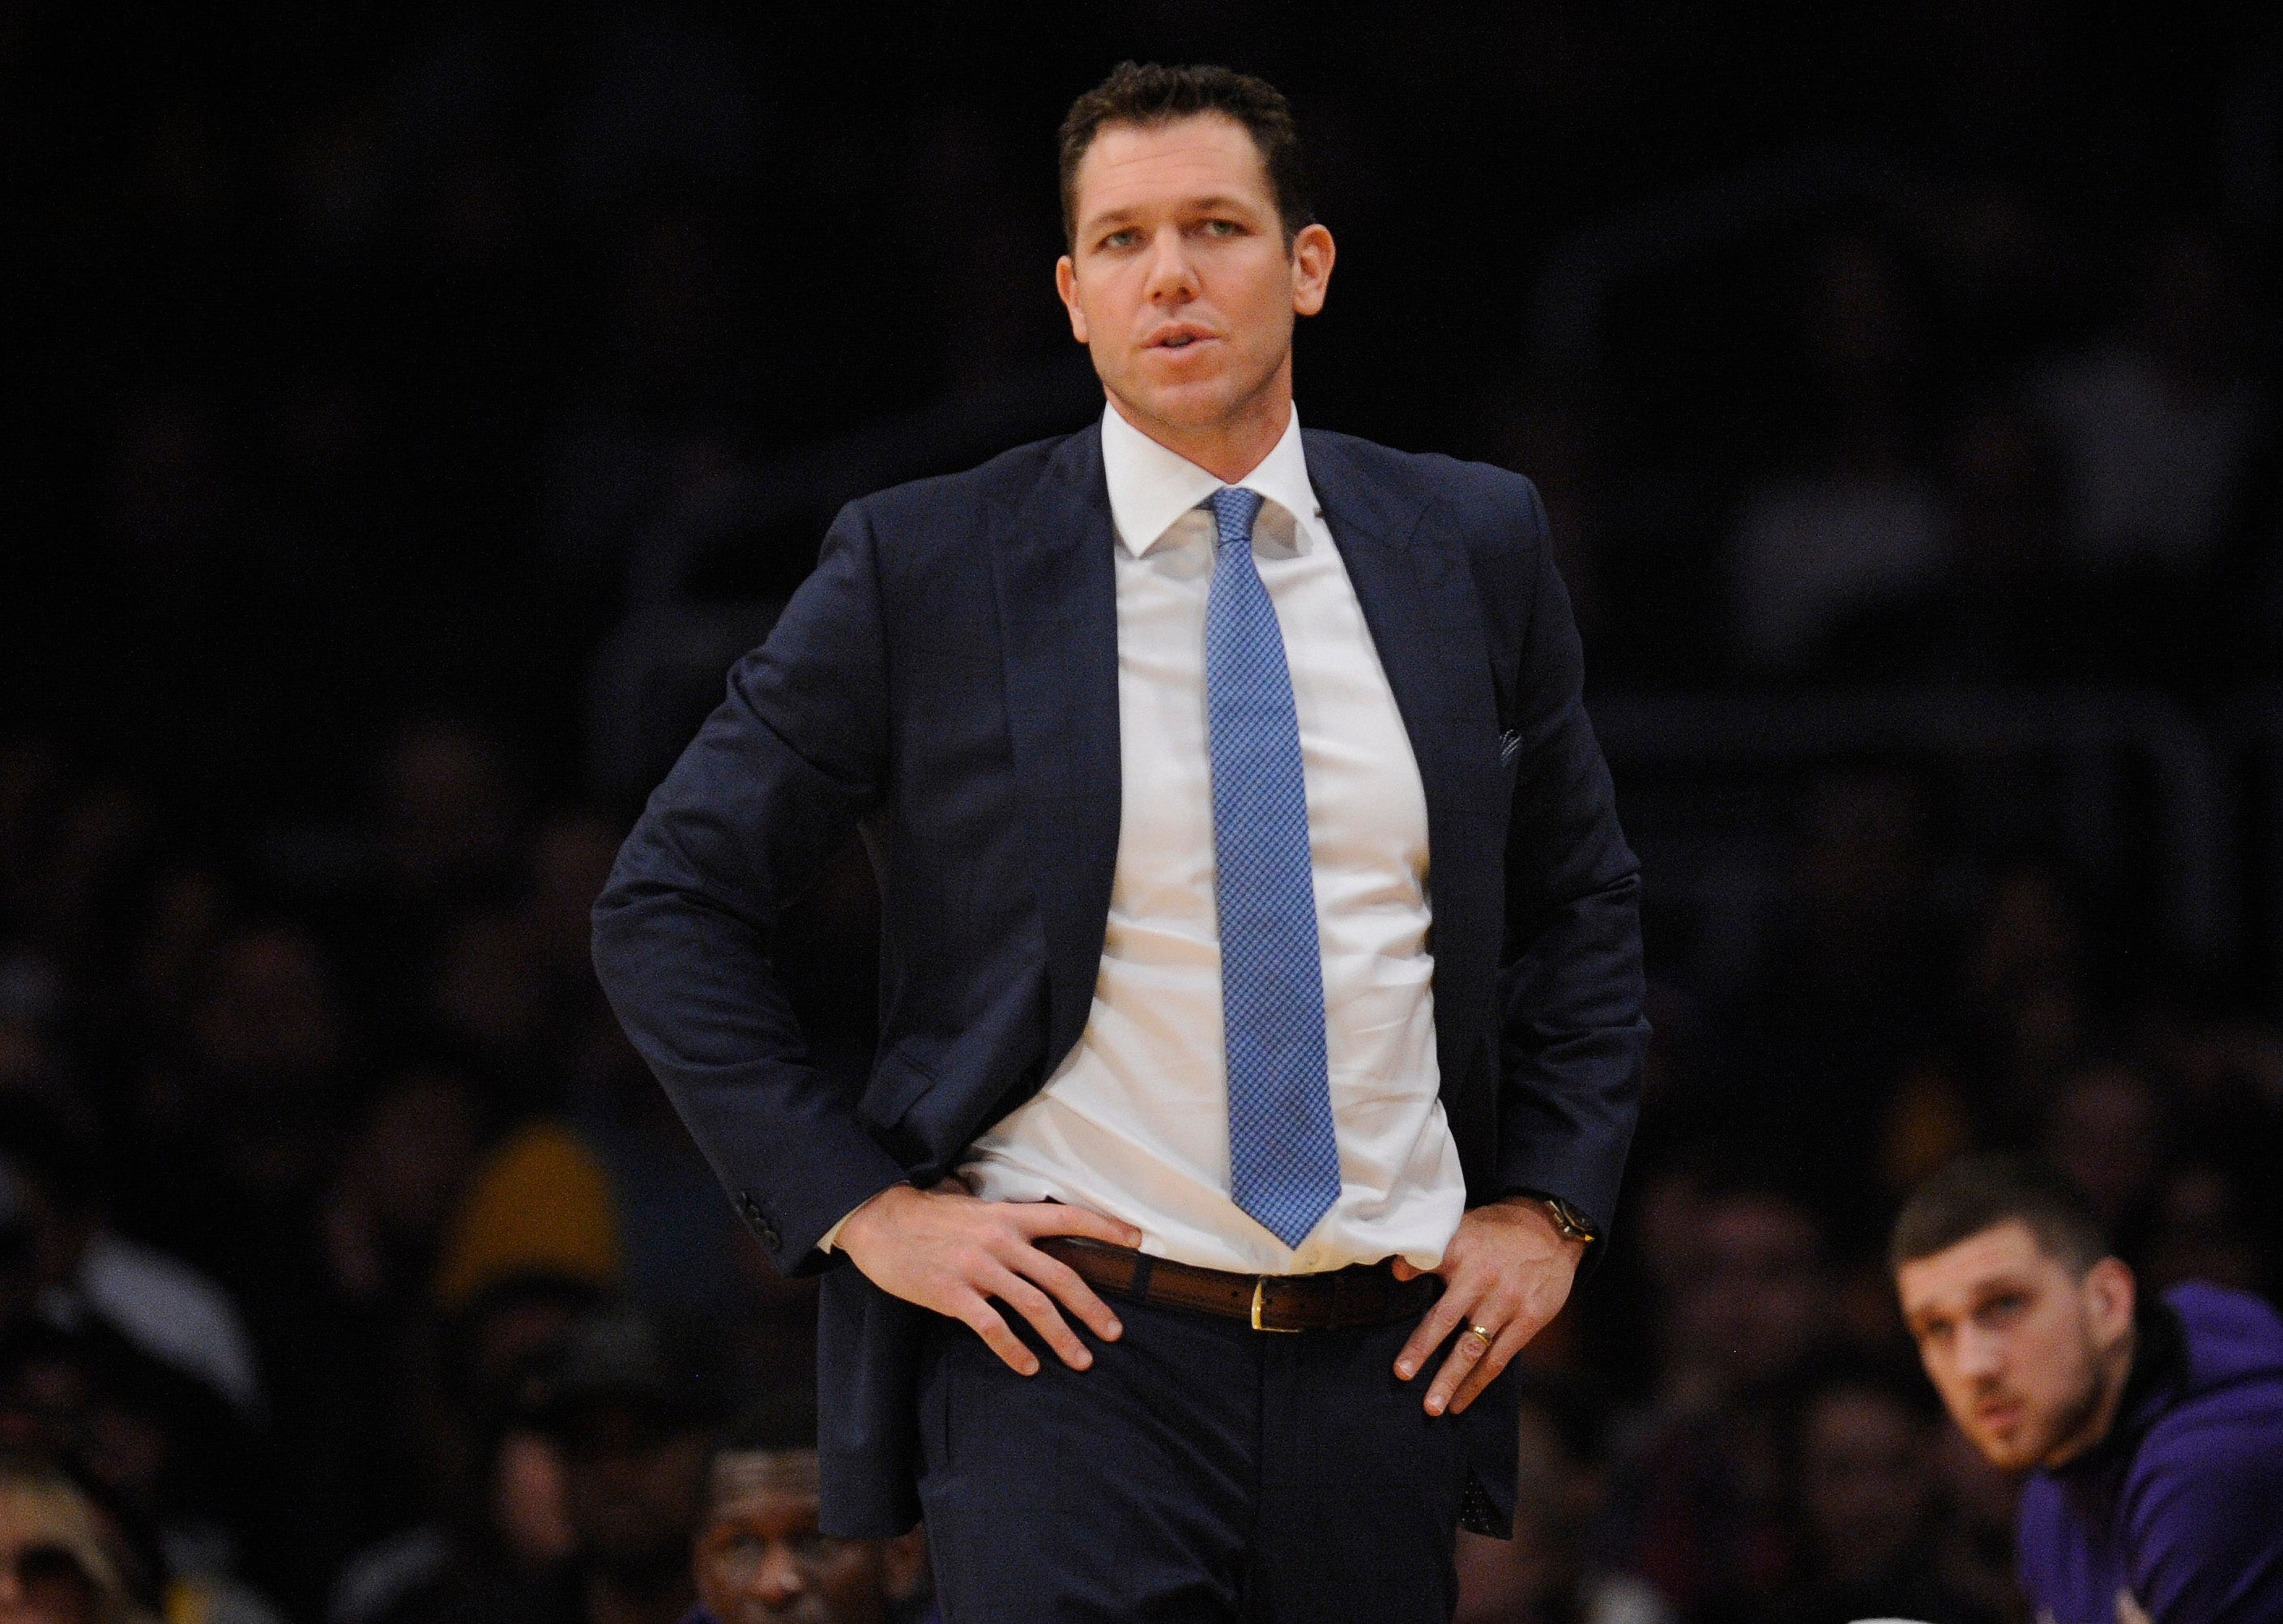 Opinion: Lakers firing Luke Walton would be totally unfair - but that won't save him